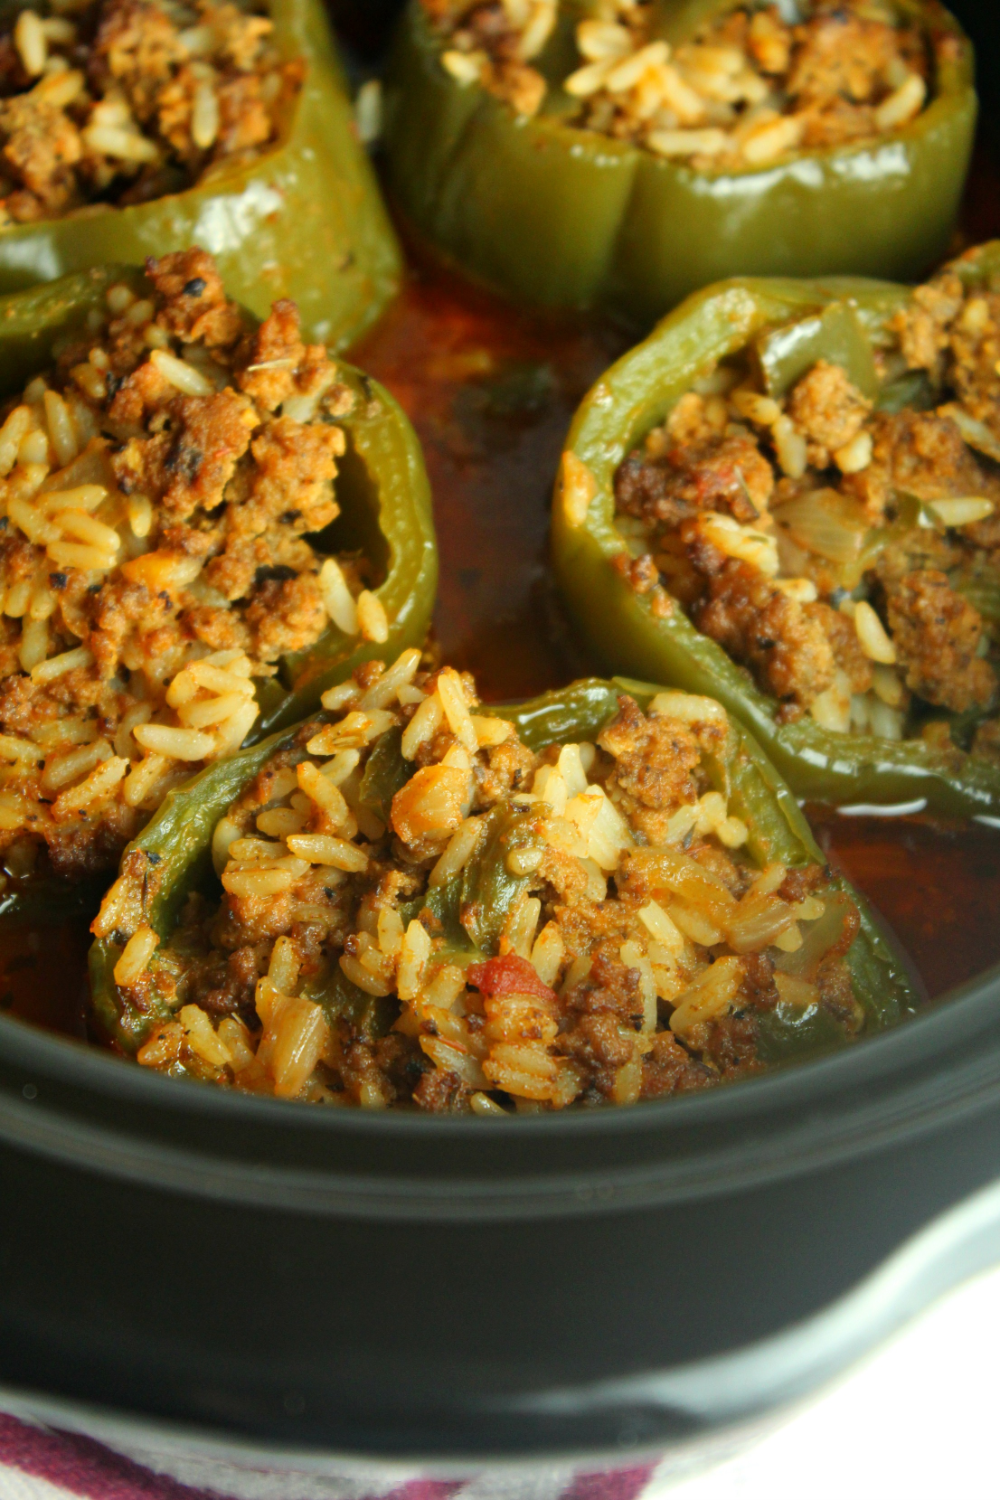 Slow Cooker Stuffed Peppers Recipe In 2020 Slow Cooker Stuffed Peppers Stuffed Peppers Crockpot Stuffed Peppers